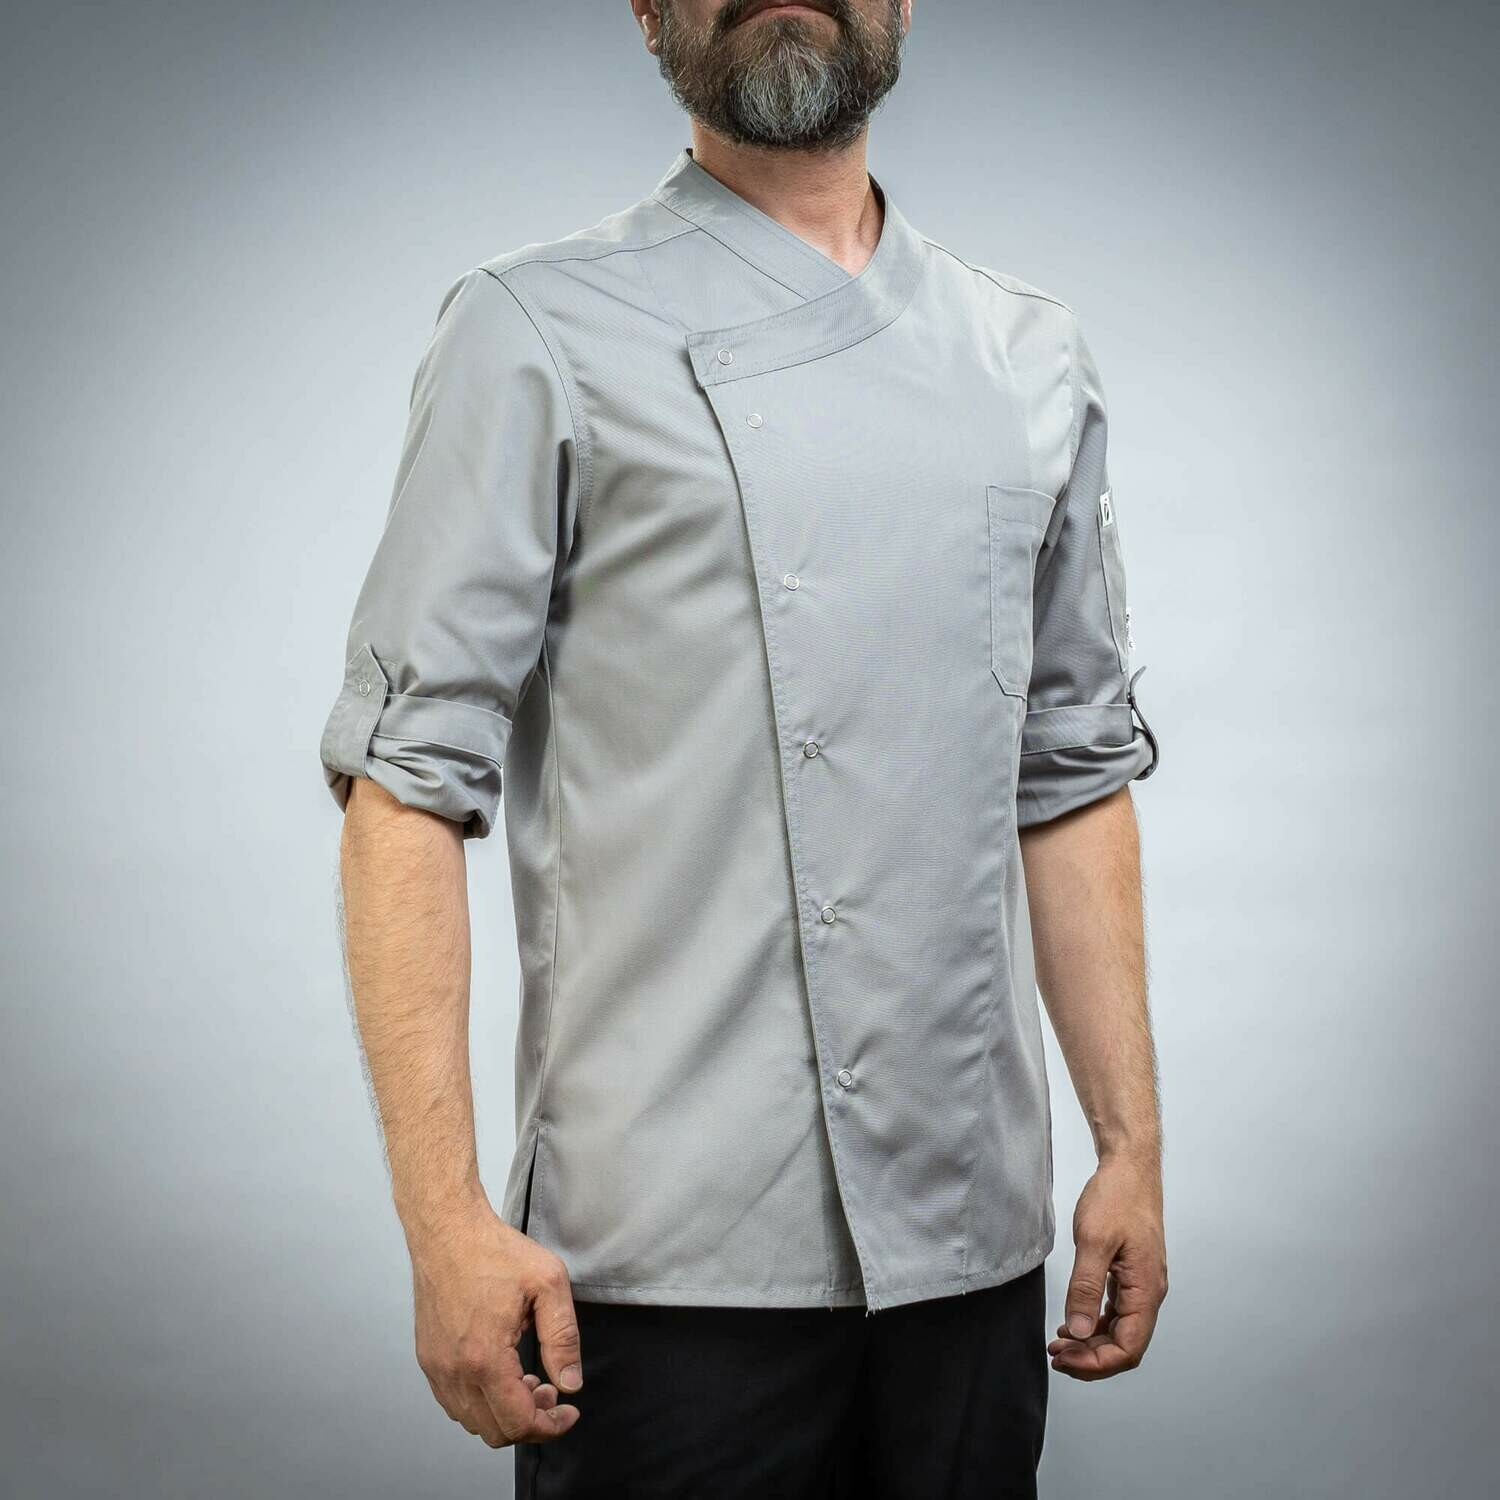 147GR - CHEF'S JACKET